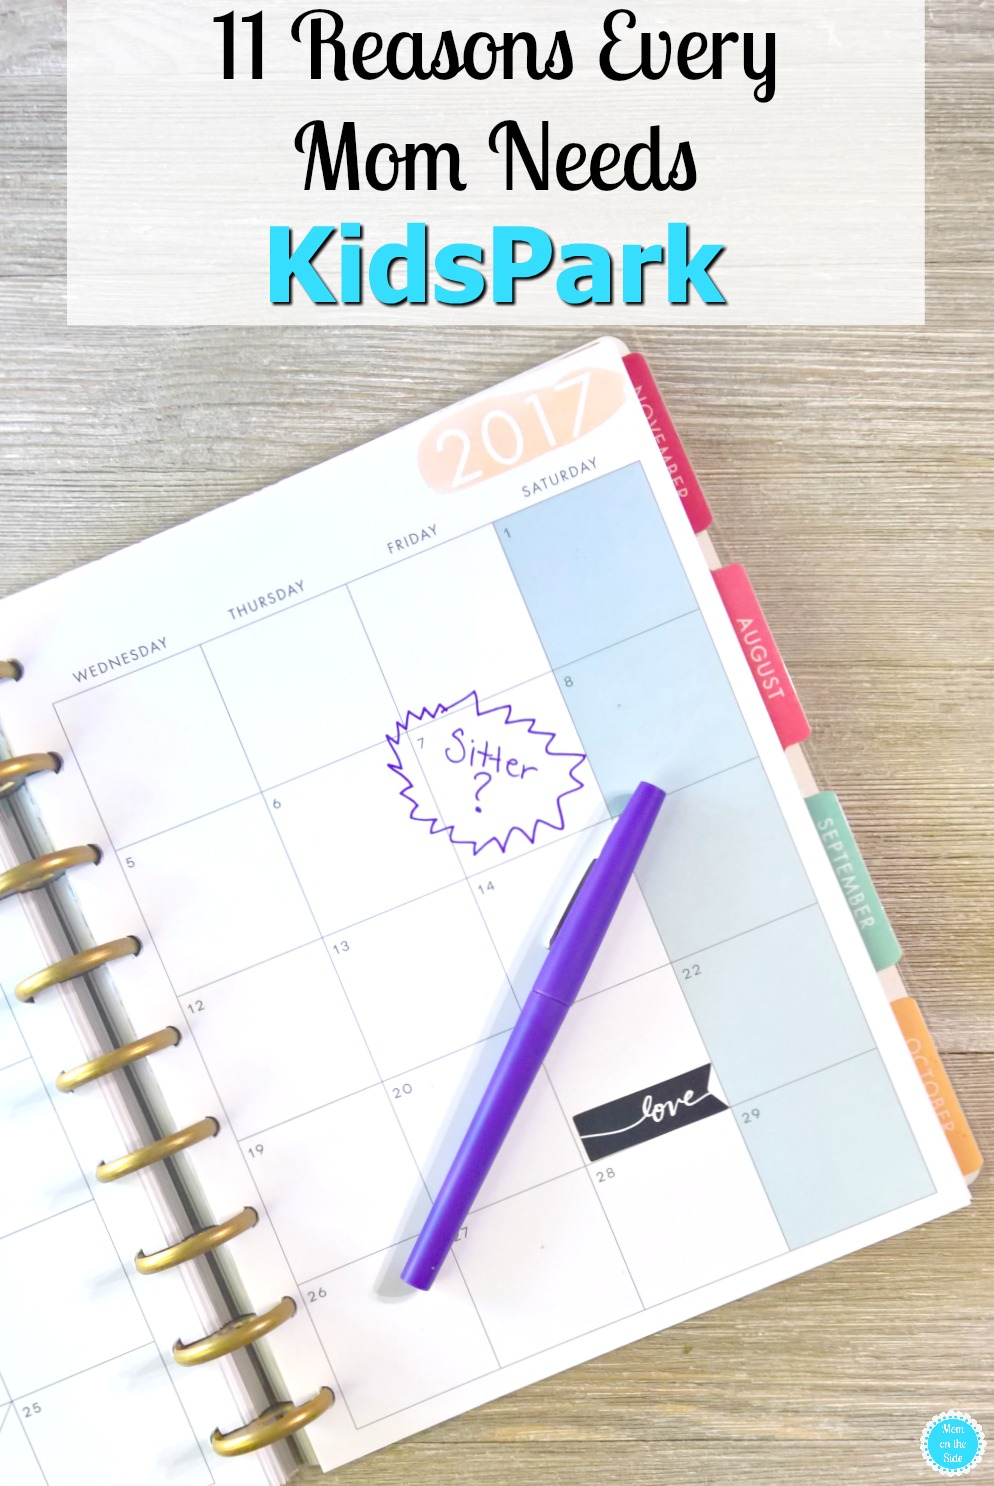 Reasons Moms Need KidsPark